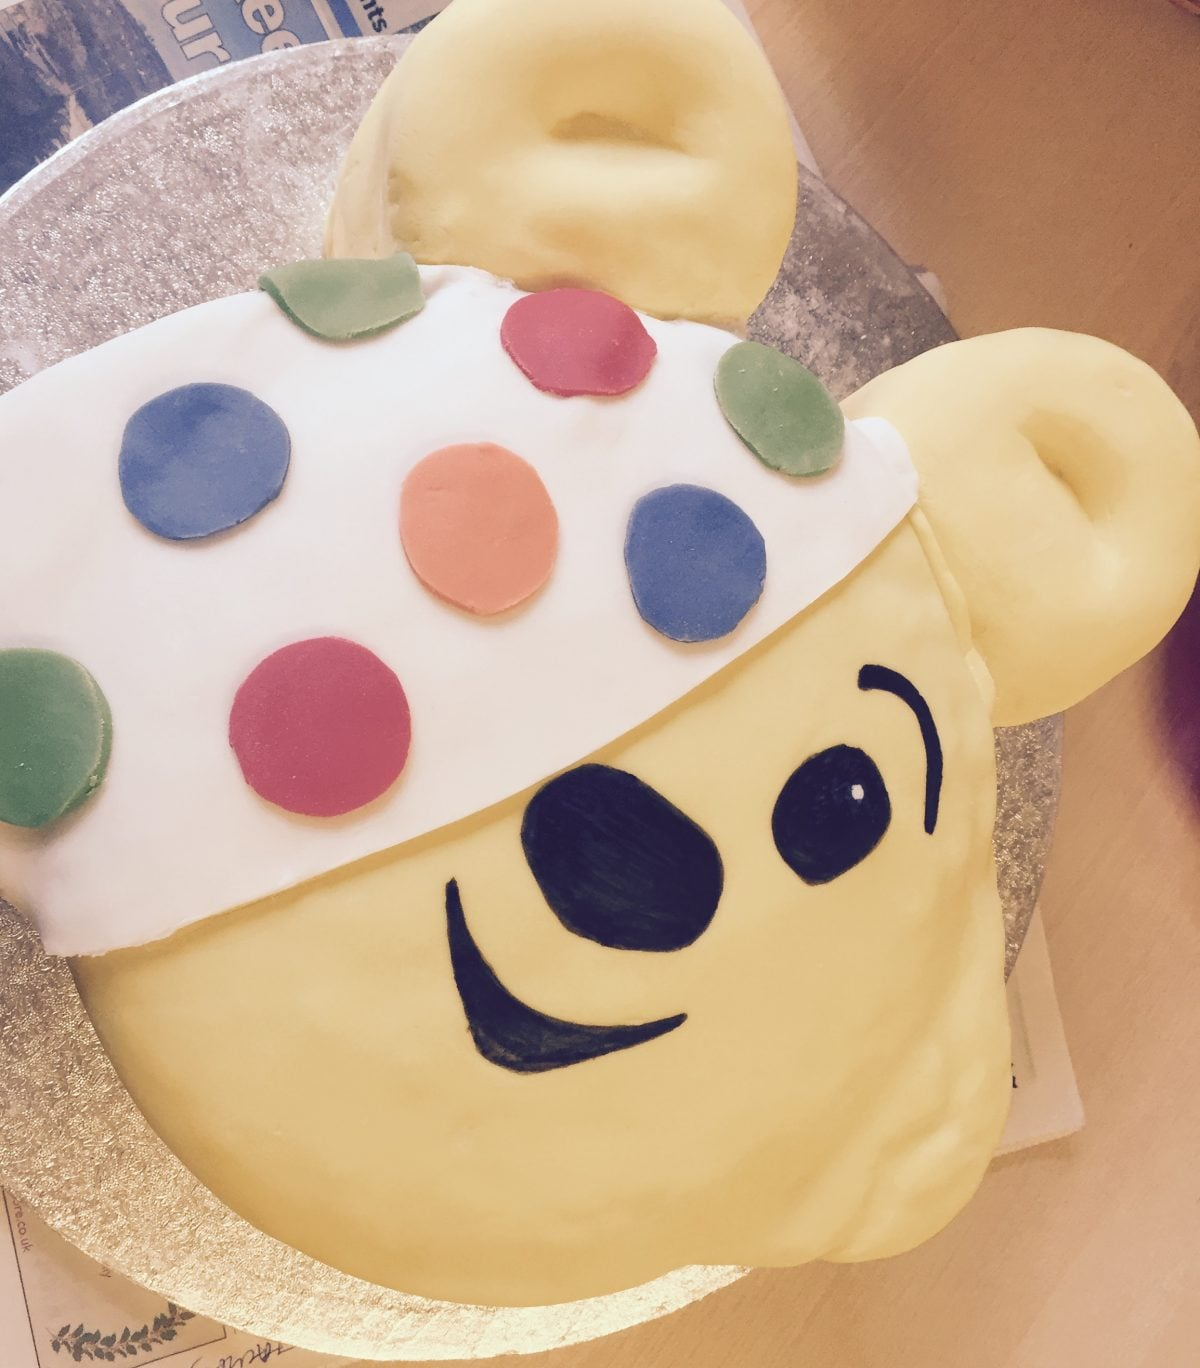 We've Raised £722 for BBC Children in Need!